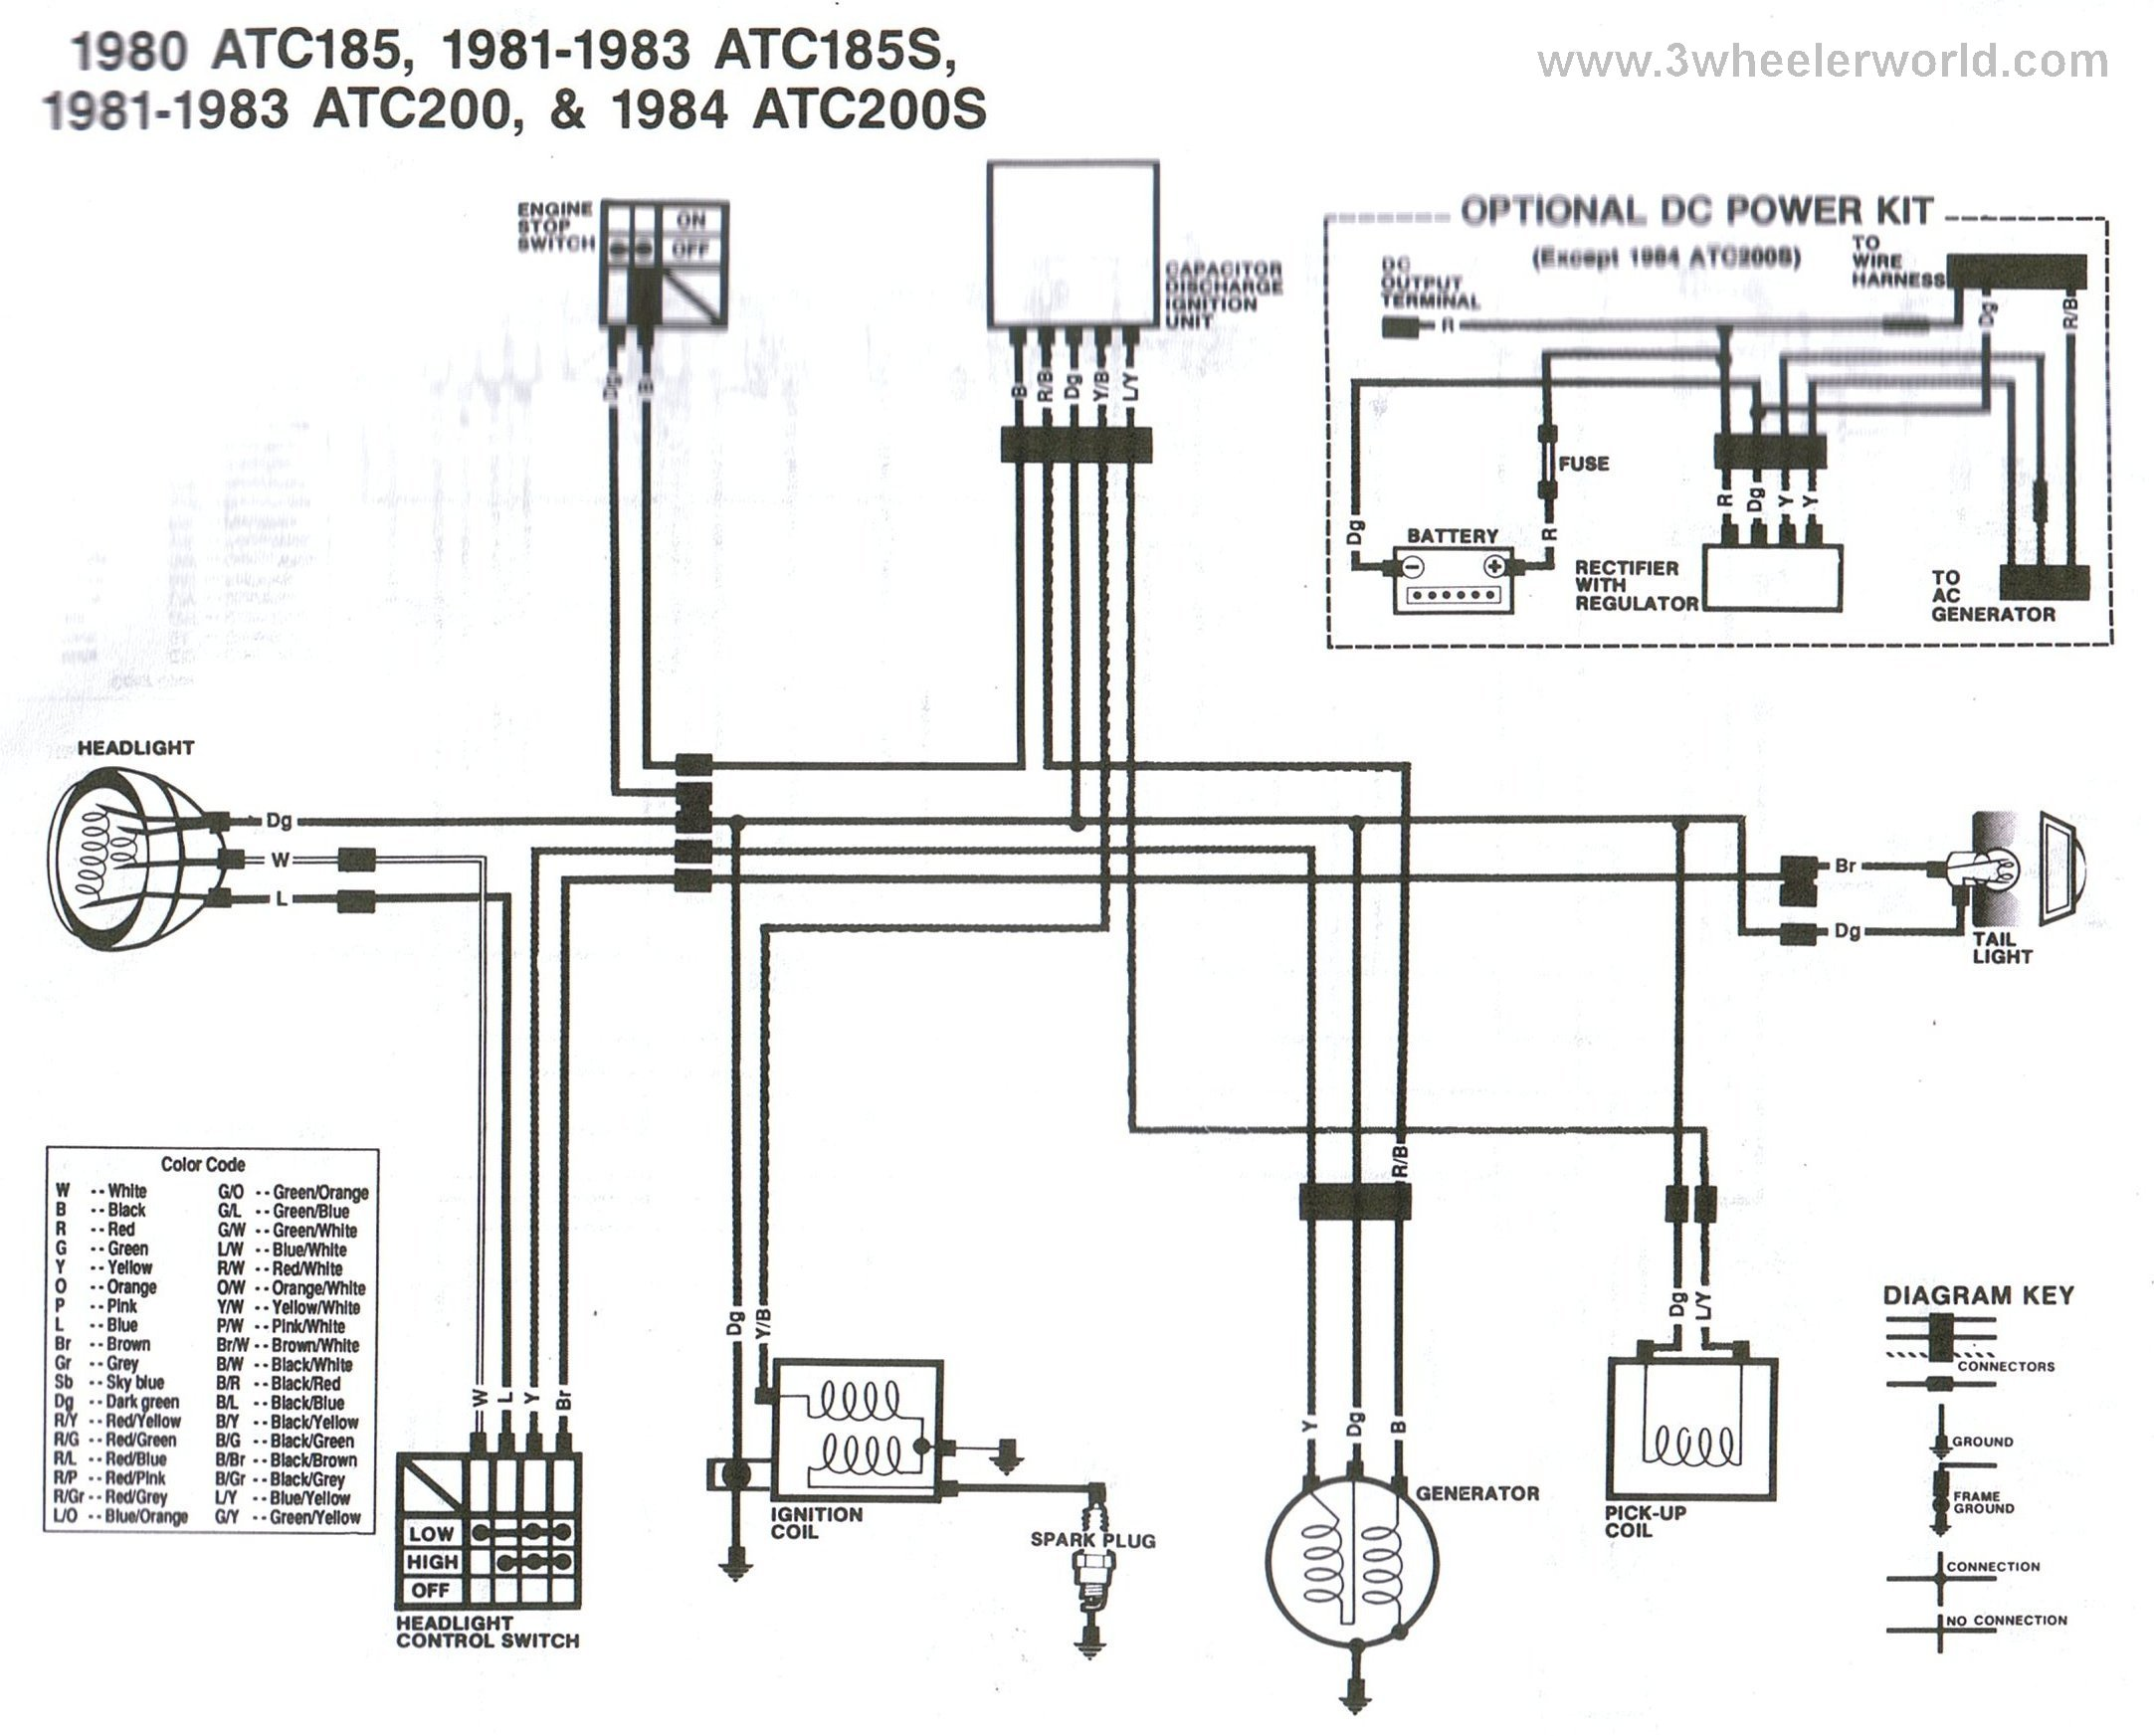 81 Honda Wiring Diagram - Schematic Diagram on yamaha xs650 wiring diagram, honda cl350 engine, honda cb360 wiring-diagram, honda cbr600rr wiring-diagram, yamaha warrior 350 wiring diagram, kawasaki ex500 wiring diagram, yamaha rz350 wiring diagram, suzuki gt550 wiring diagram, honda ct70 wiring-diagram, suzuki gs450 wiring diagram, honda cb750 wiring-diagram, honda motorcycle wiring diagrams, suzuki gt750 wiring diagram, honda ct110 wiring-diagram, honda cx500 wiring-diagram, honda sl125 wiring-diagram, honda cl350 carburetor, honda cl350 frame diagram, yamaha xs850 wiring diagram, honda ct90 wiring-diagram,